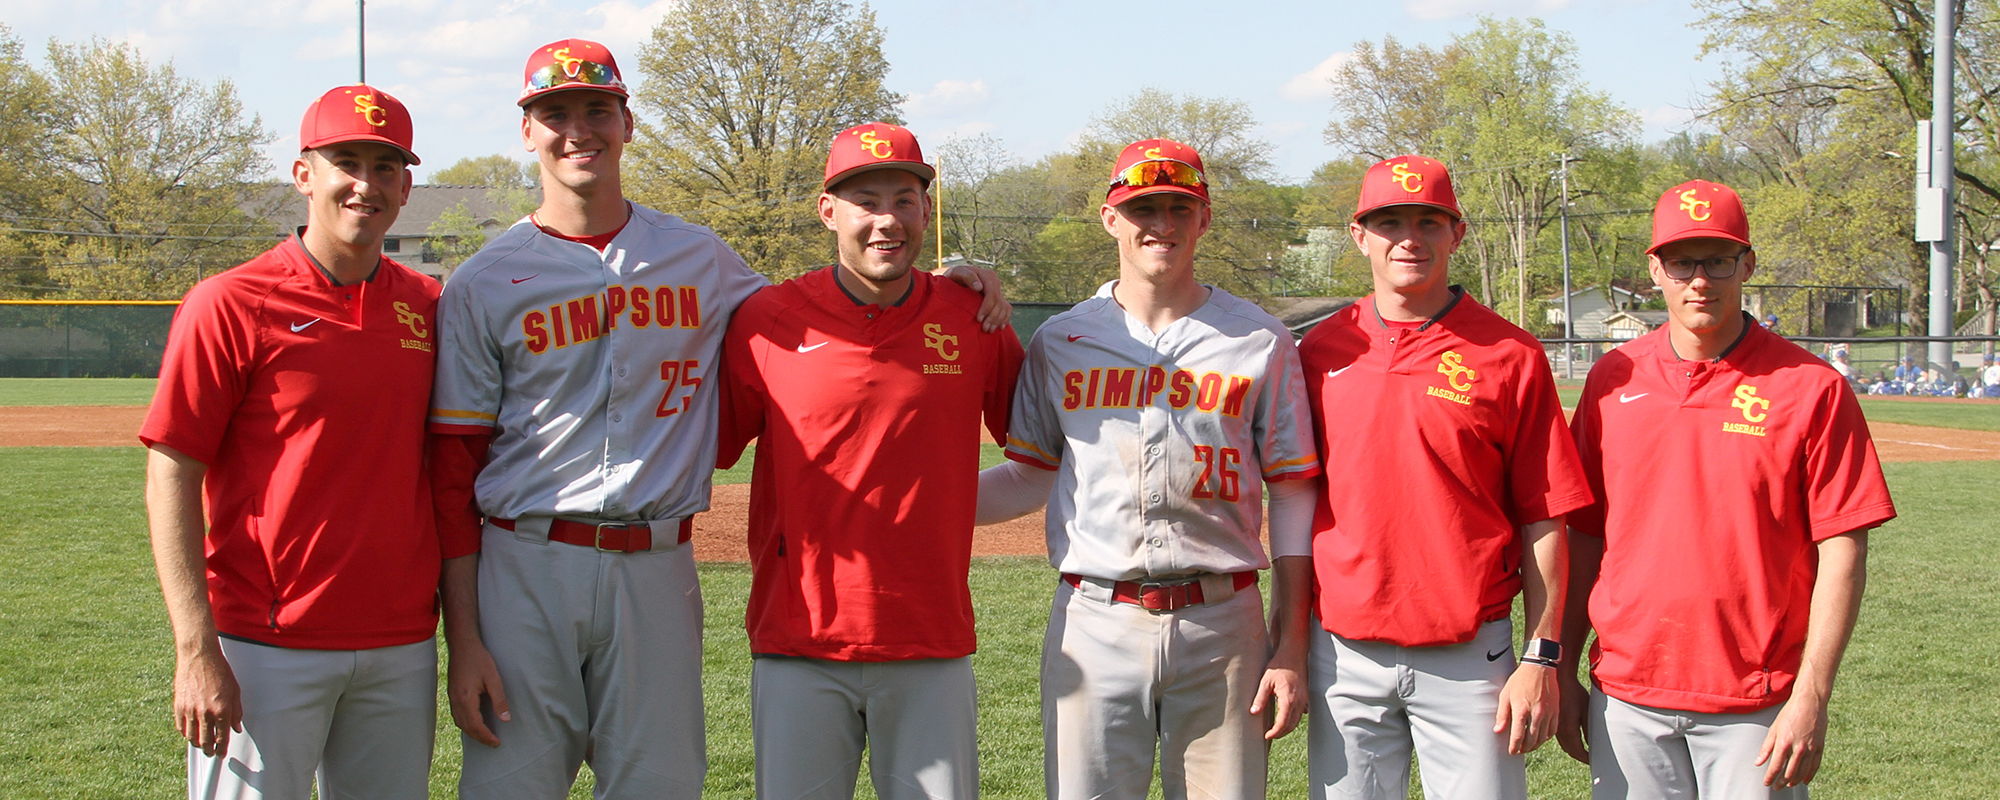 L-R: Head coach Nathan Roling, Devon Veach, Steve Carlson, Nathan Carlin, assistant coaches Ethan Westphal and Trent Dooley